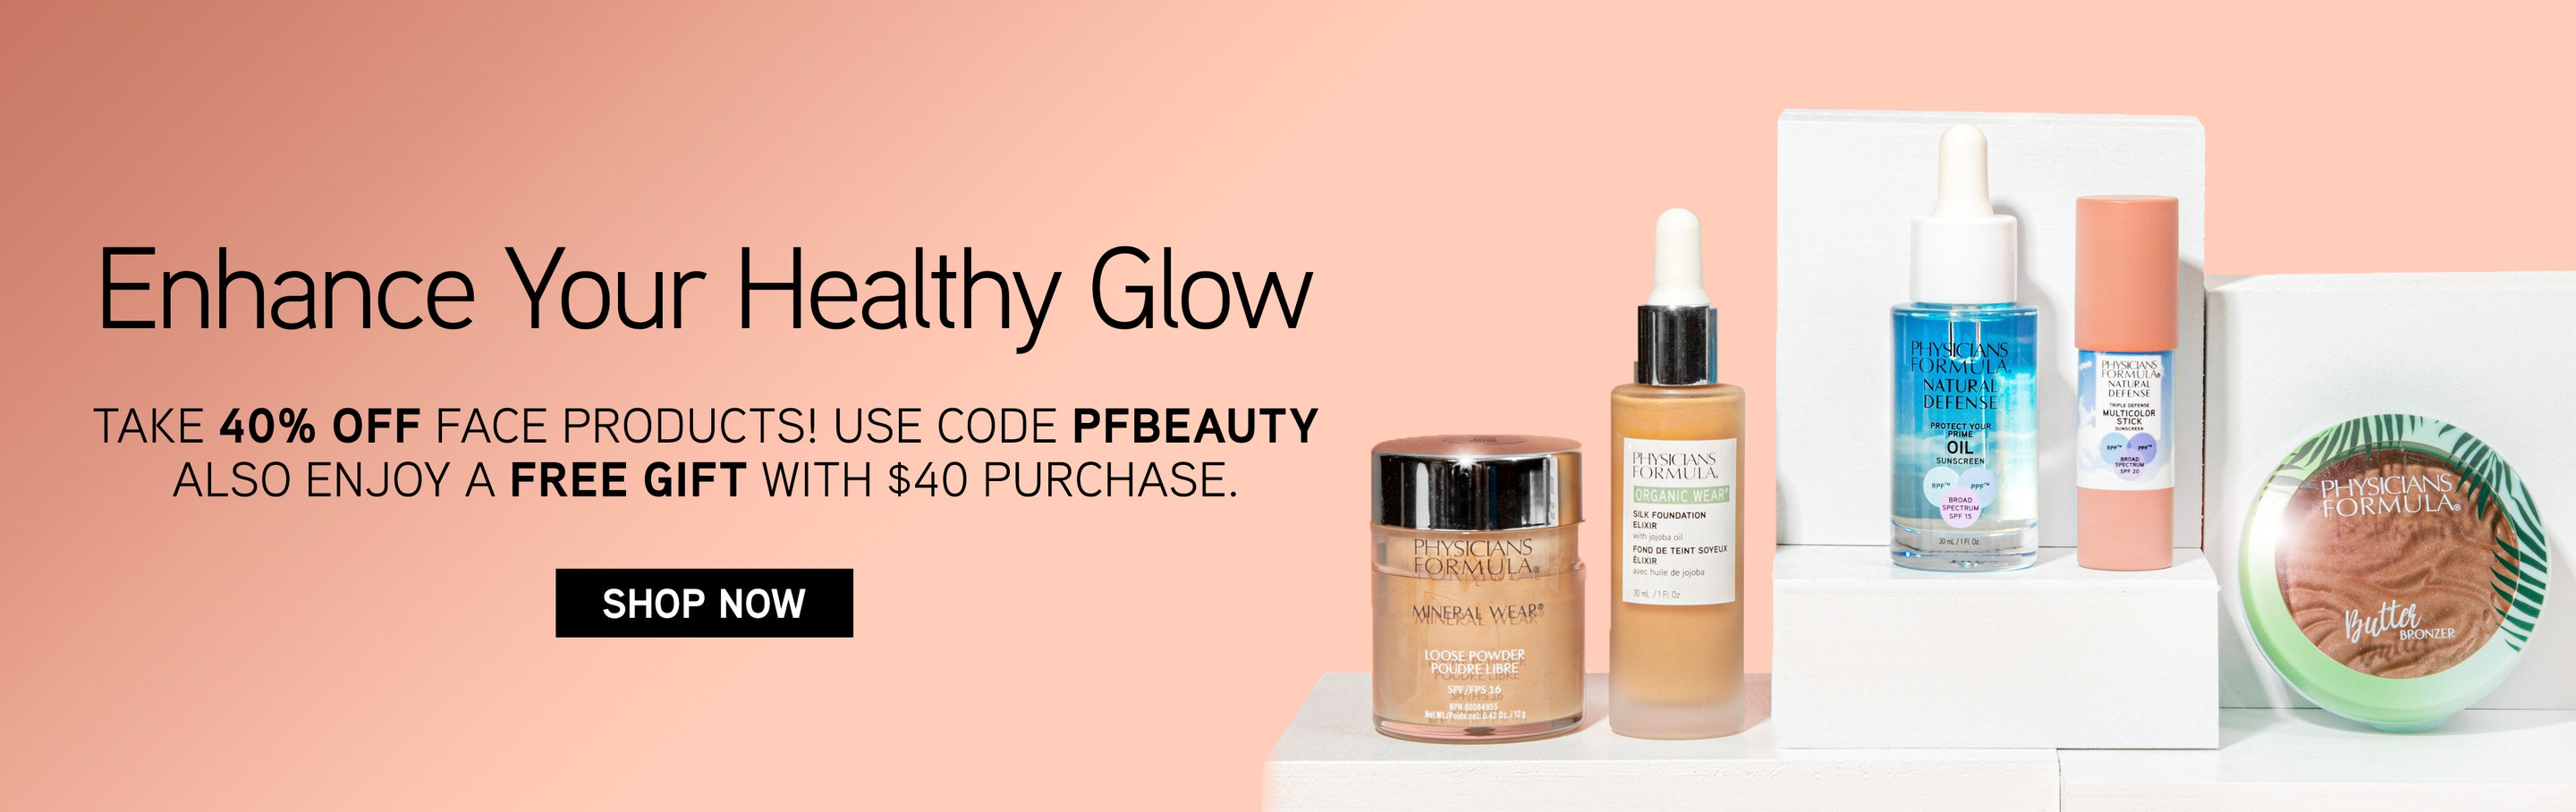 Physcians Formula | Enhance your Healthy Glow with 40% Off Face Products use code: PFBEAUTY + Enjoy a Free Gift with $40 Purchase. Shop Now! Save on your favorite powder, bronzer and more! | Products front facing with caps fastenend on white and peach bac